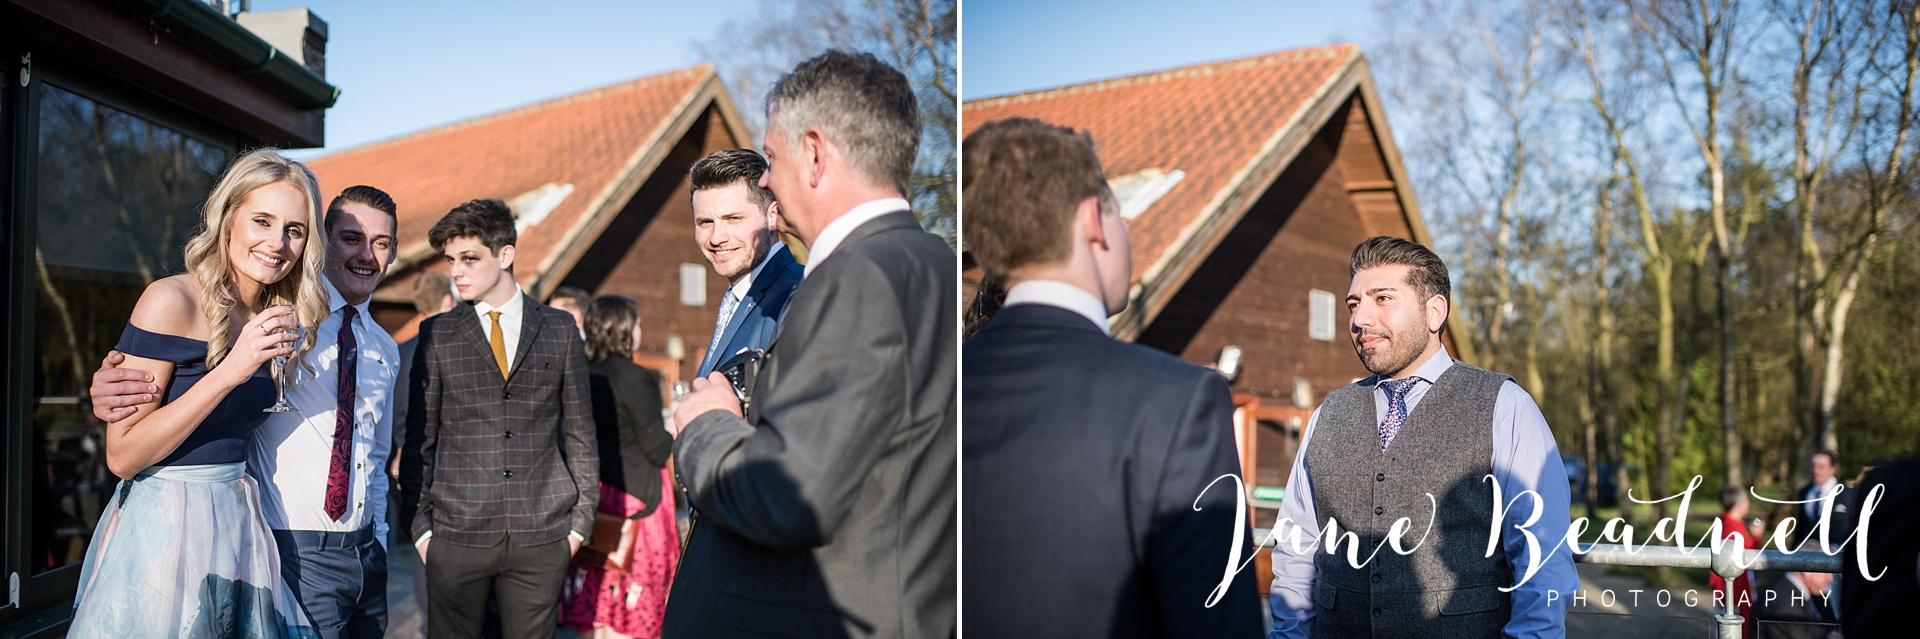 Otley Chevin Lodge wedding photography by Jane Beadnell Photography Leeds_0160